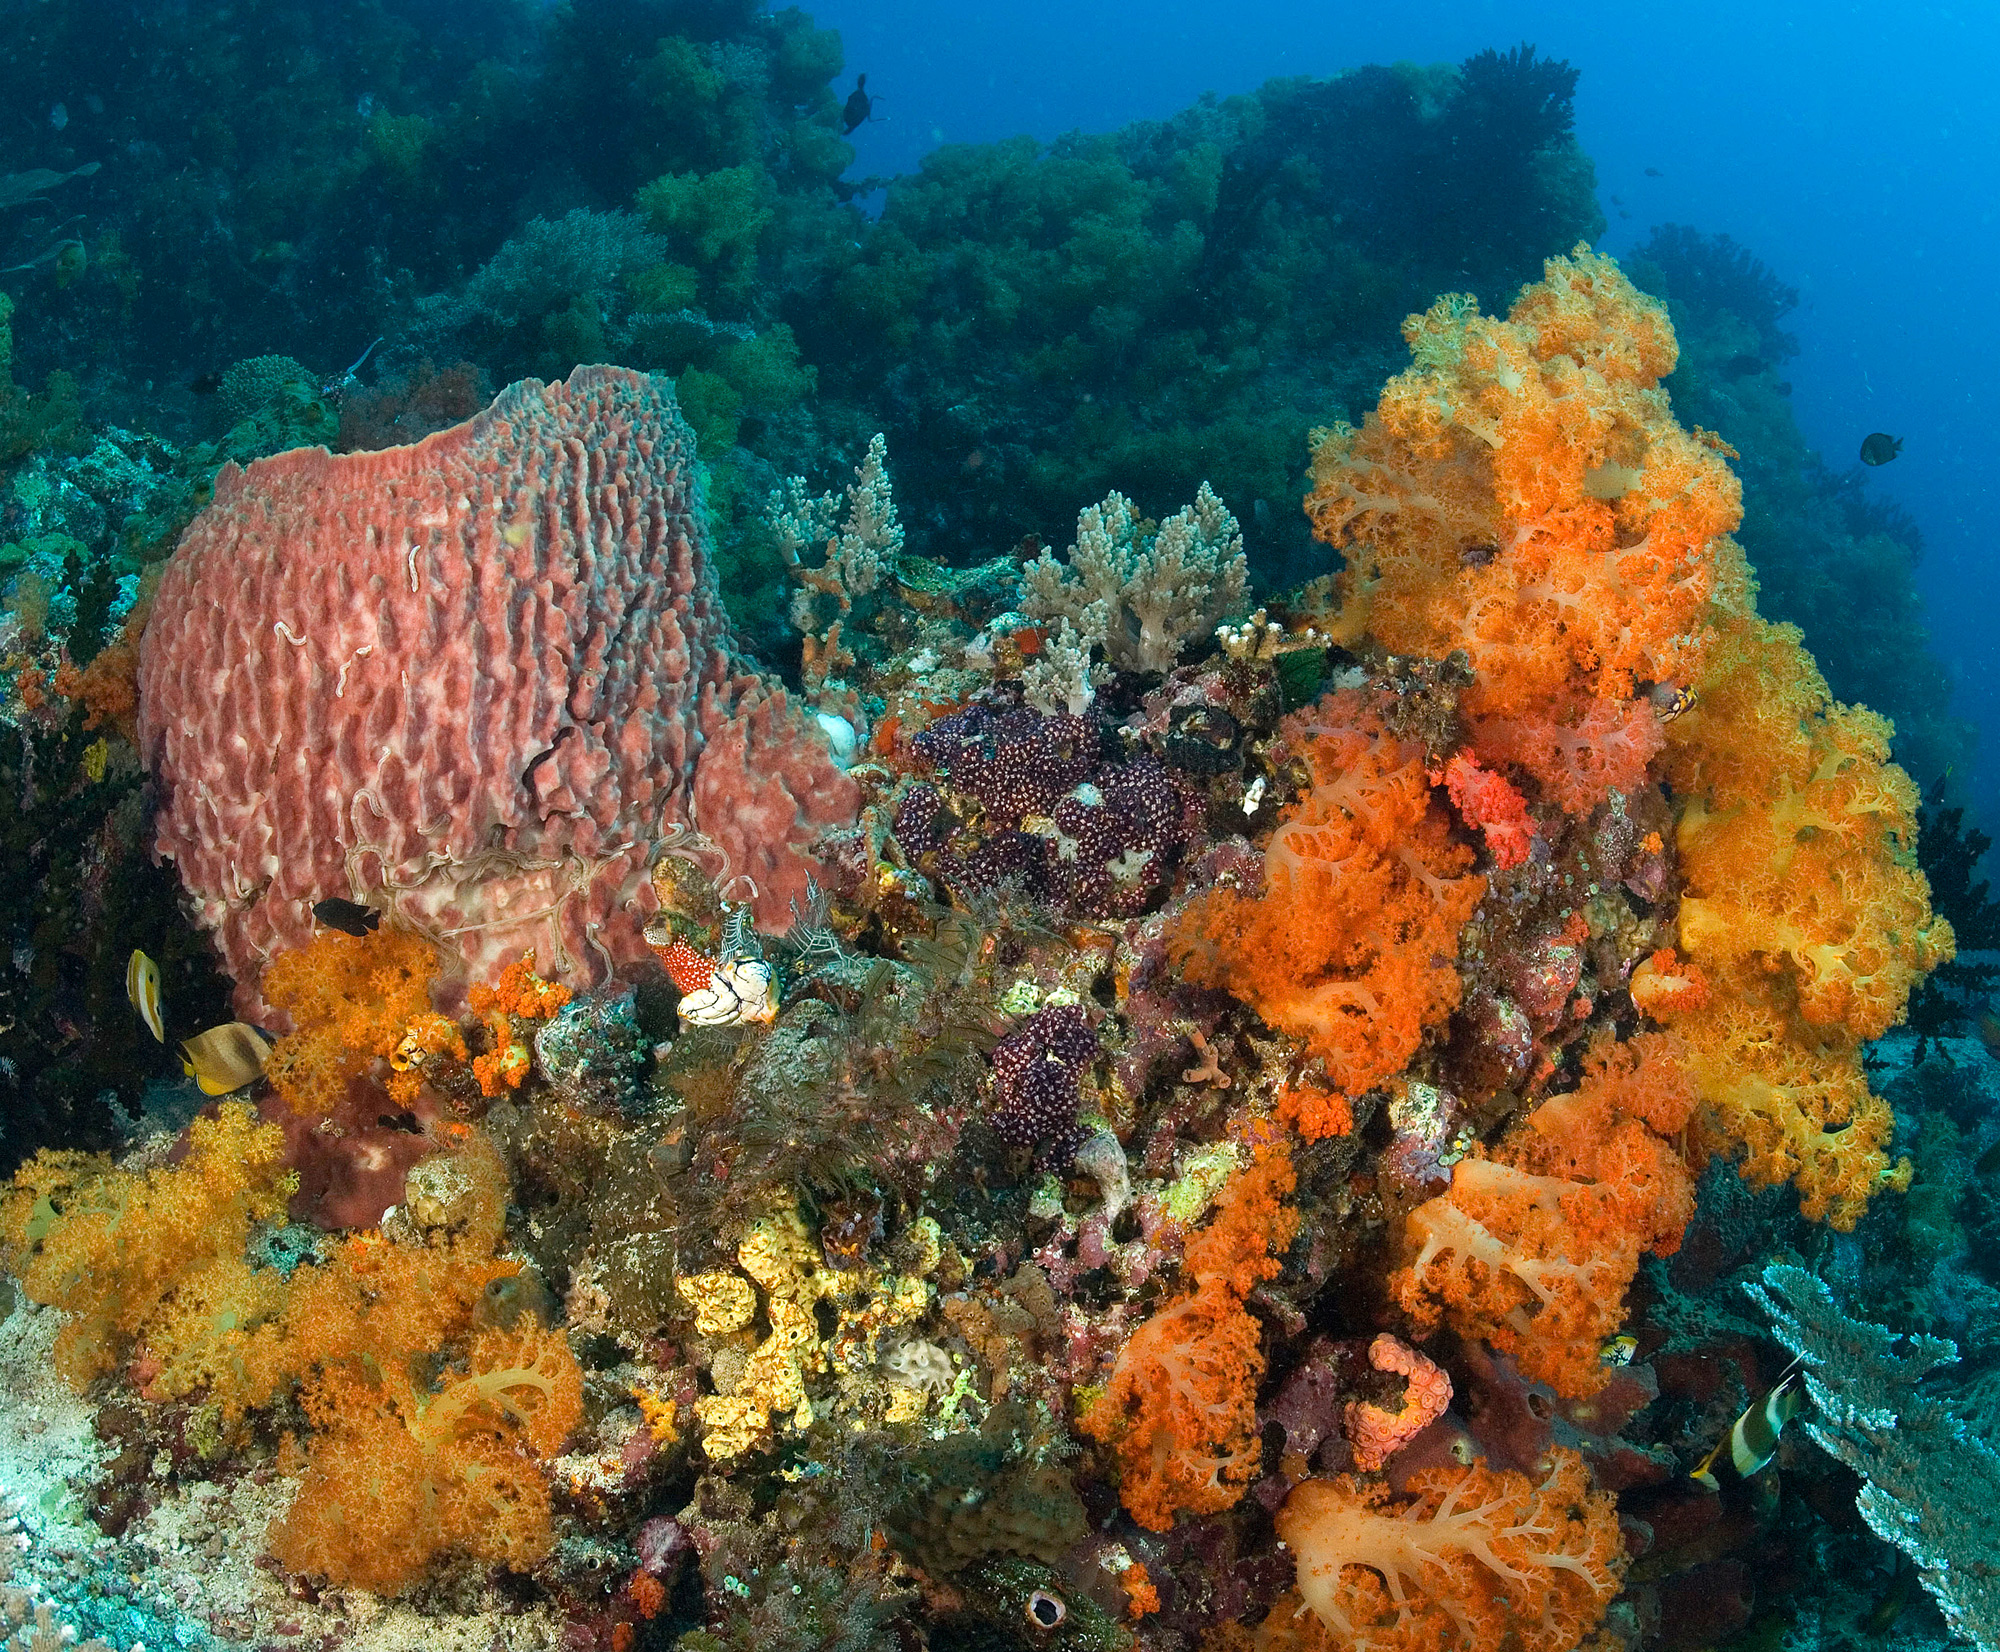 Corals, sponges, and algae are the major components of most coral reef communities as shown in this picture.<div class='credit'><strong>Credit:</strong> Corals, sponges, and algae are the major components of most coral reef communities as shown in this picture.</div>